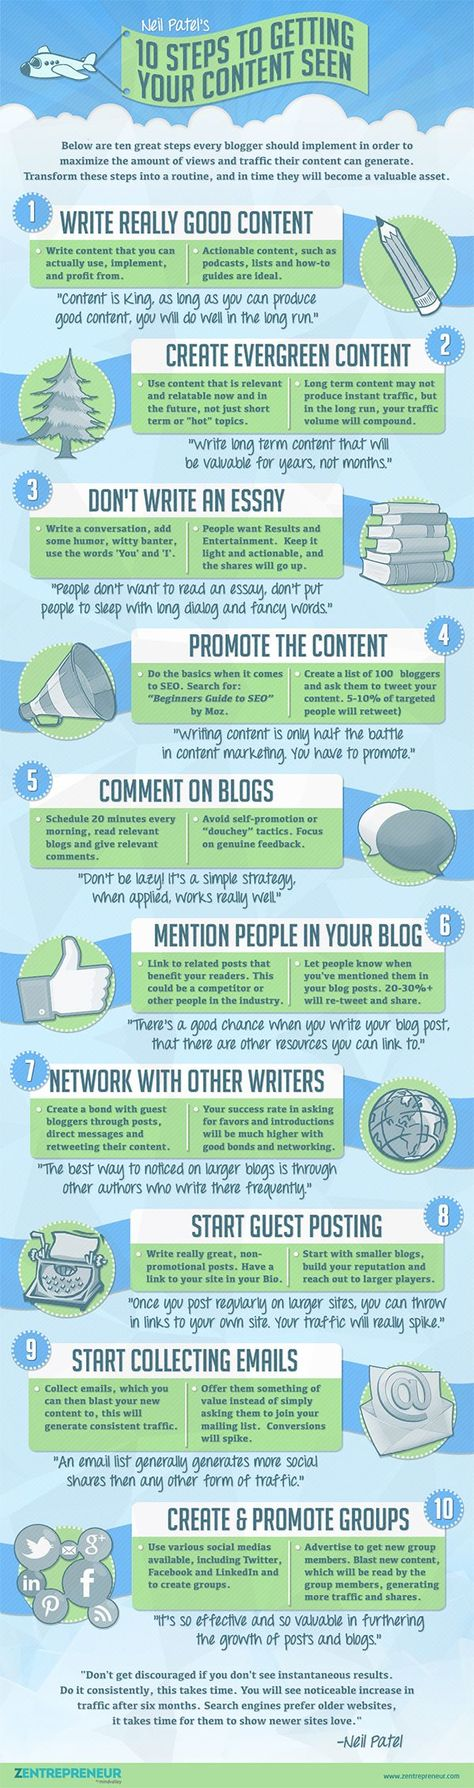 Blogging Tips: 10 Proven Ways to Make Your Content Go Viral